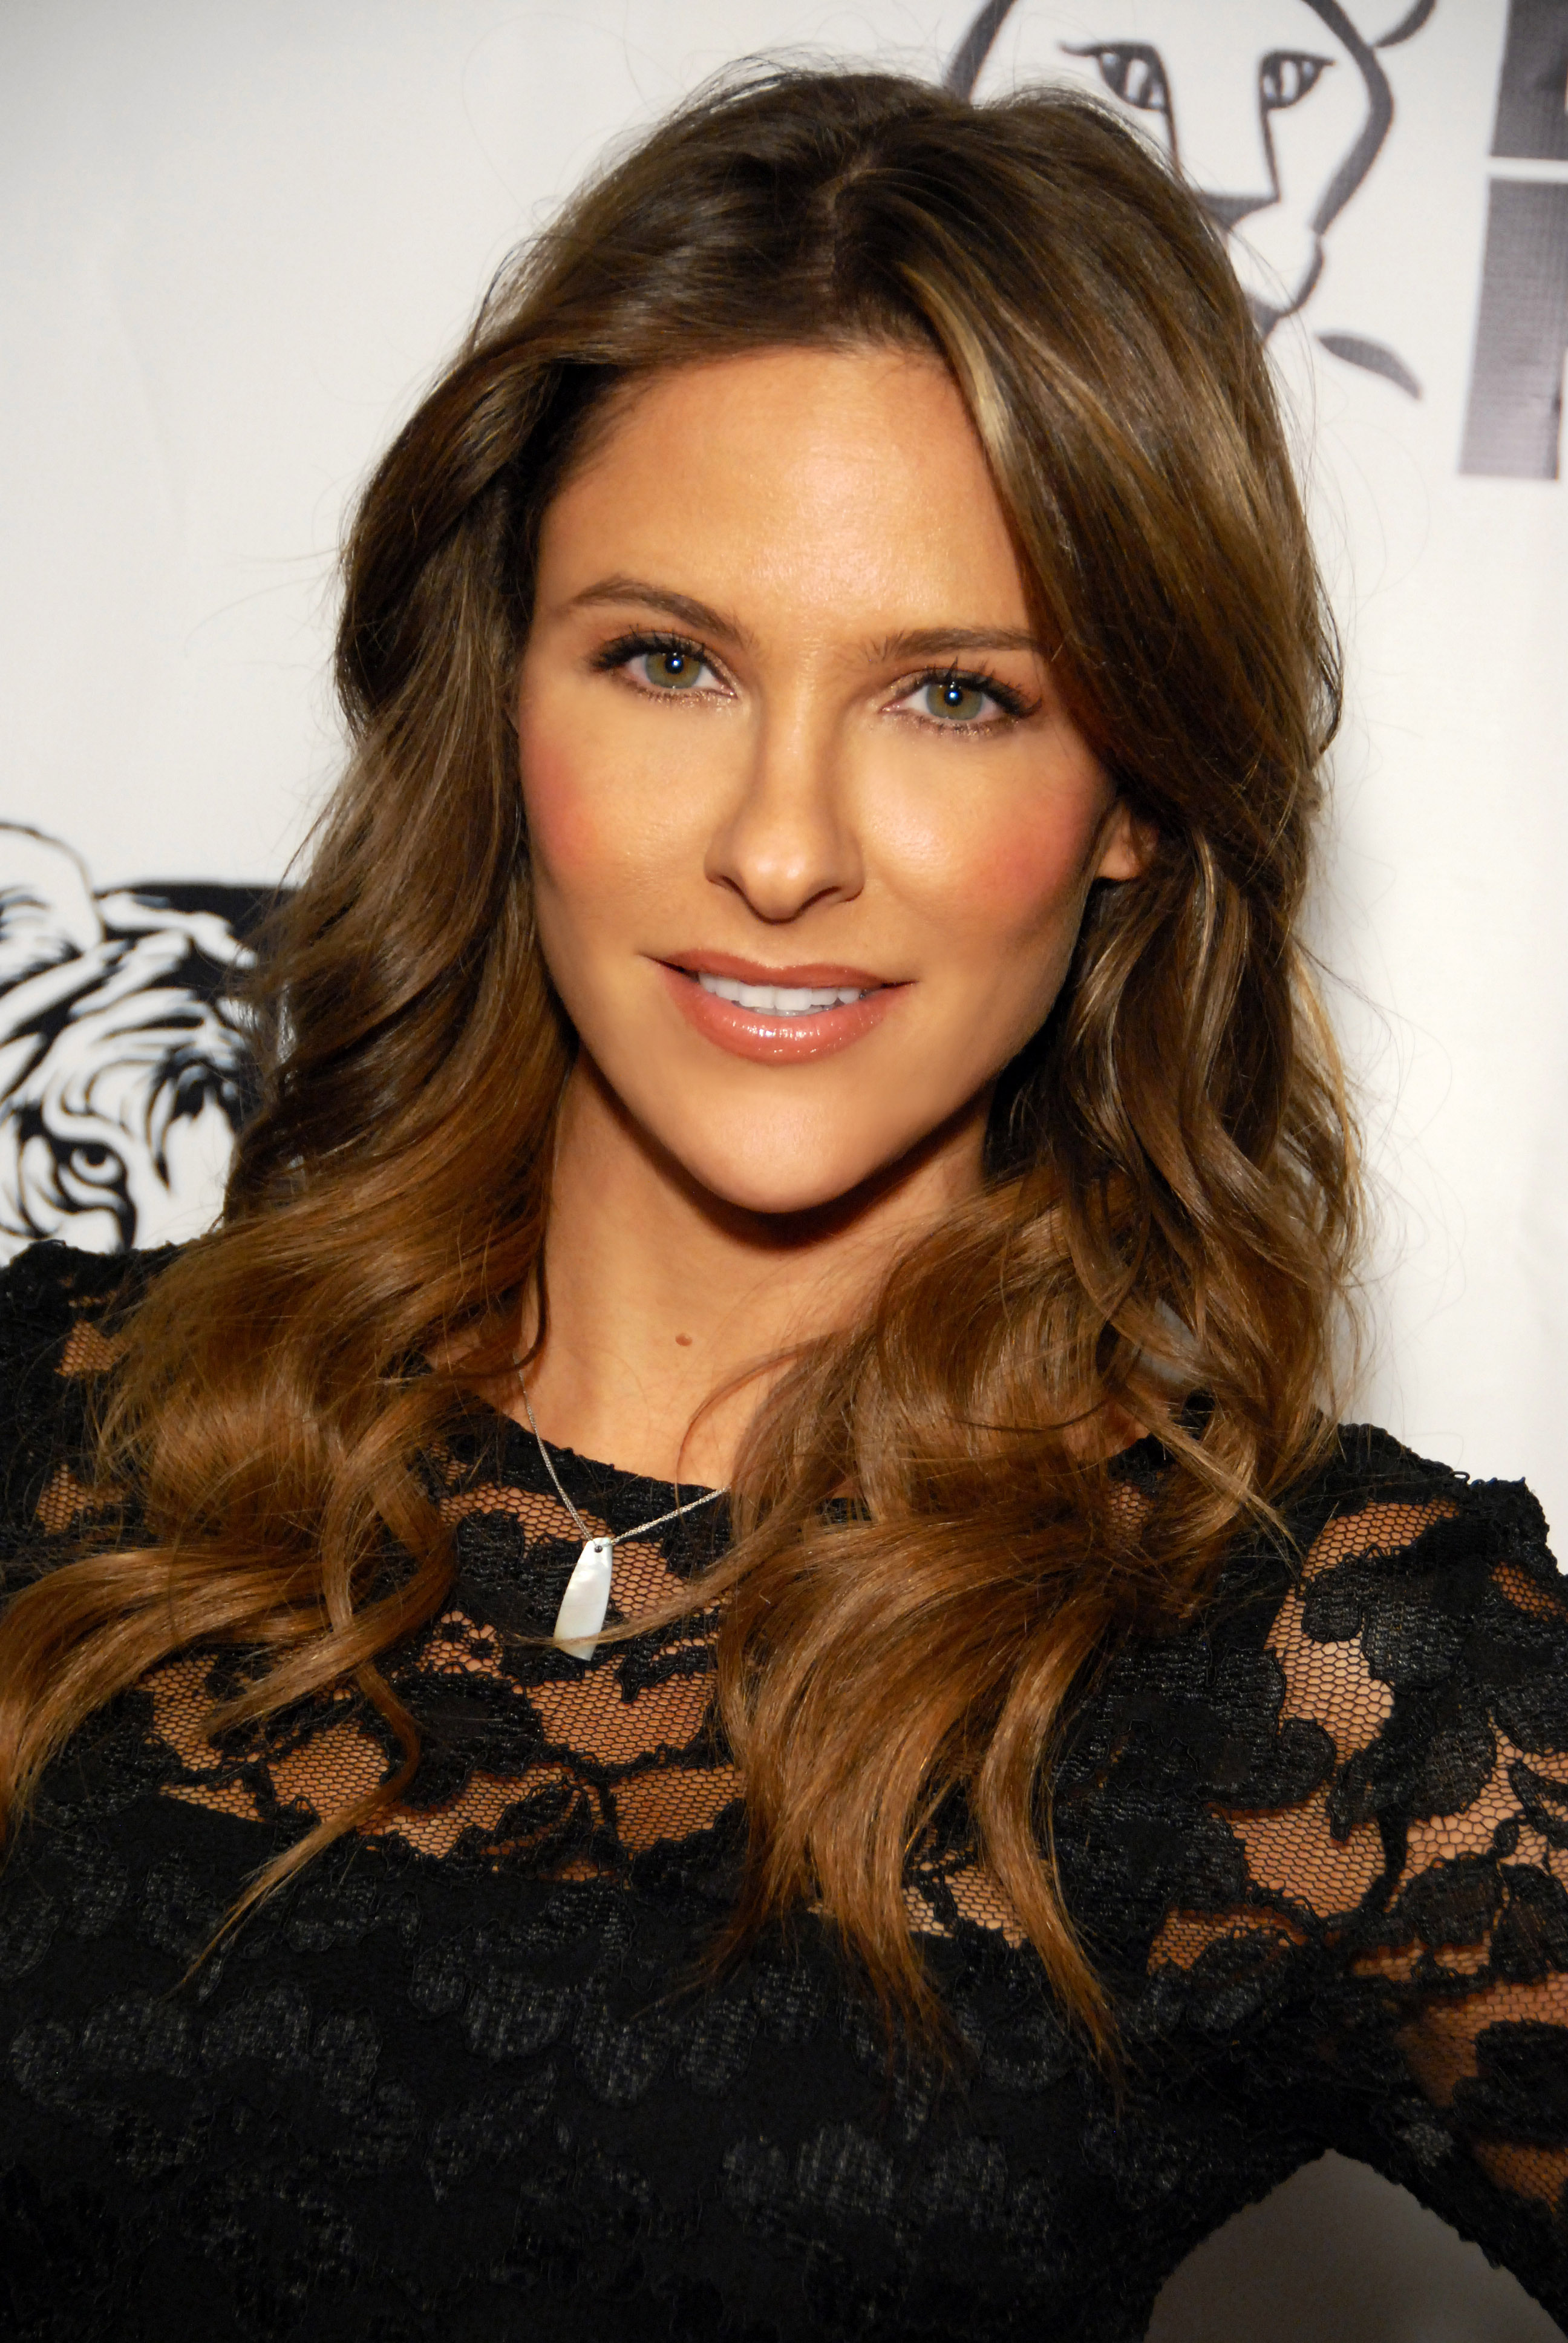 Is jill wagner related to lindsay wagner